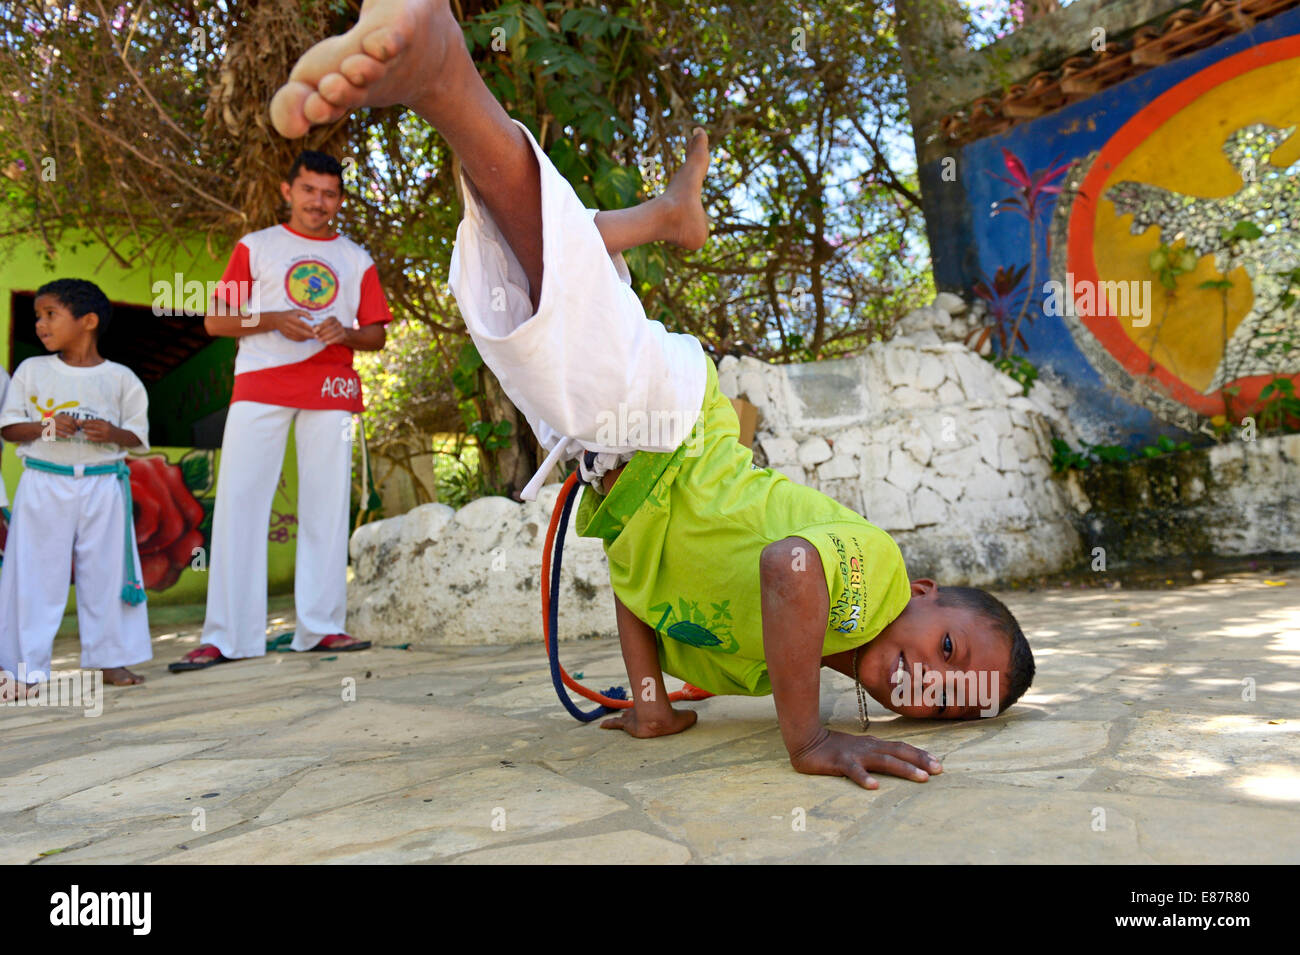 Boy performing acrobatics, Capoeira lessons, Crato, State of Ceará, Brazil - Stock Image